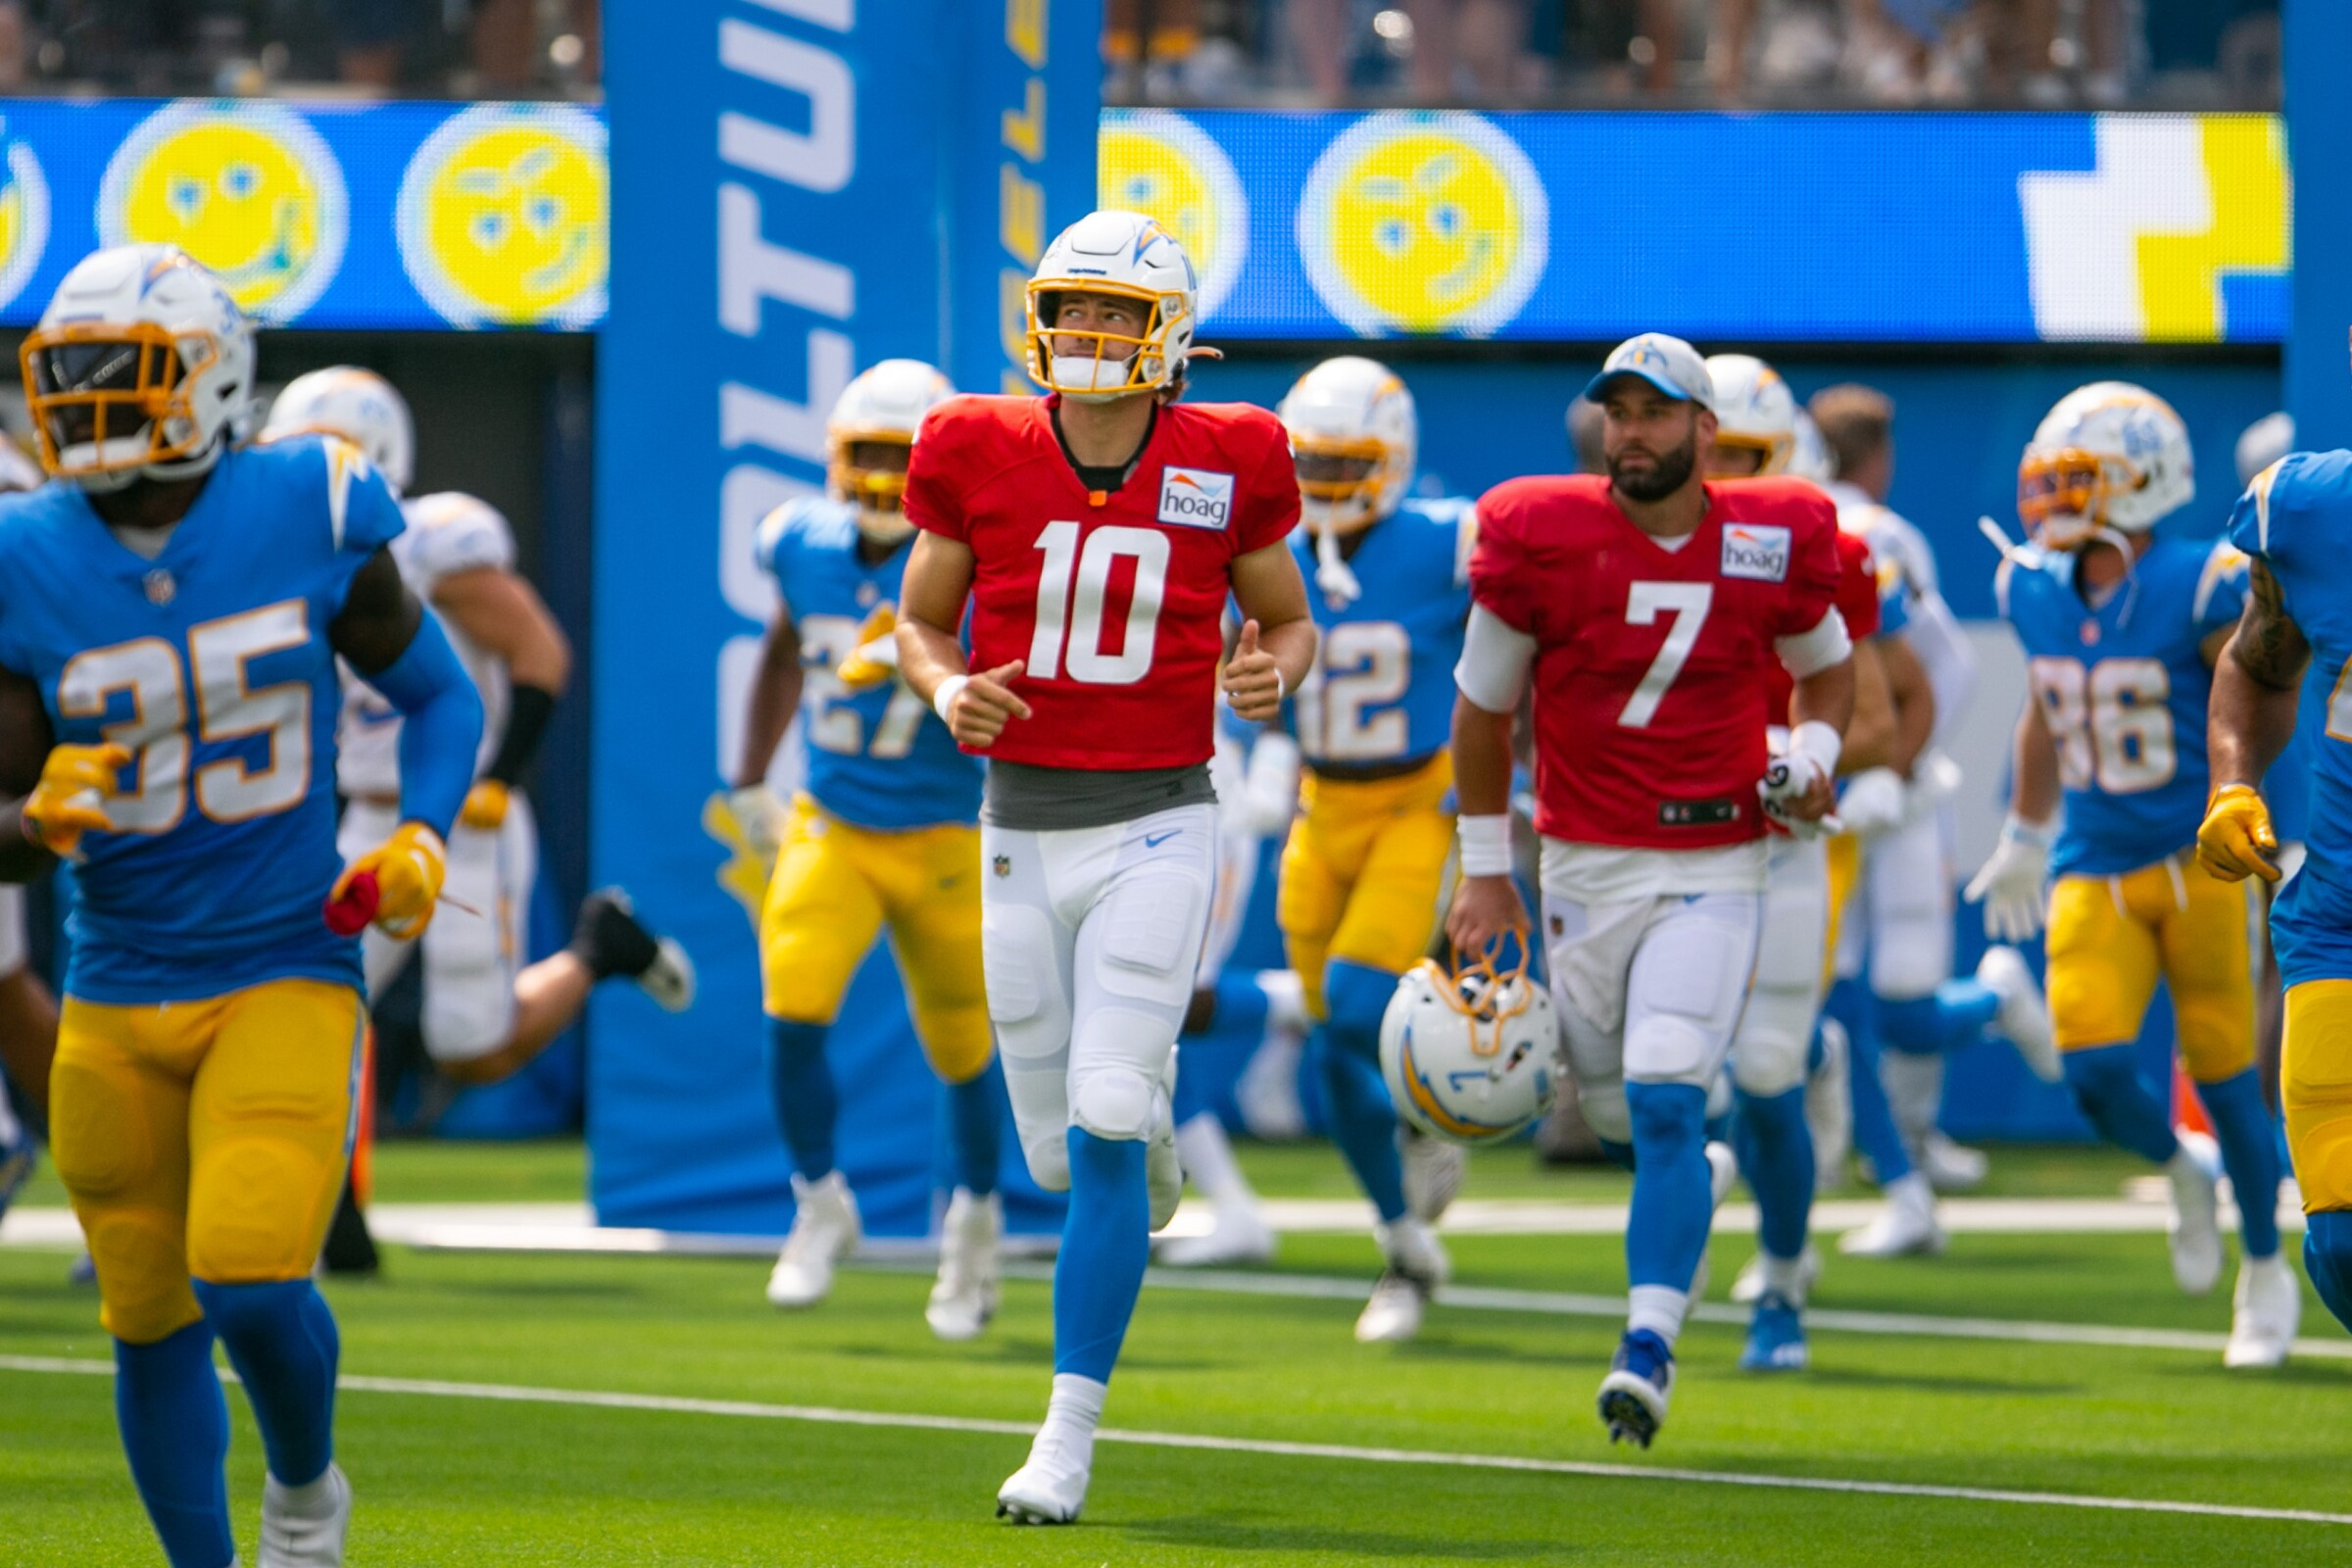 Chargers quarterback Justin Herbert runs onto the field with his teammates before an open practice session at SoFi Stadium.